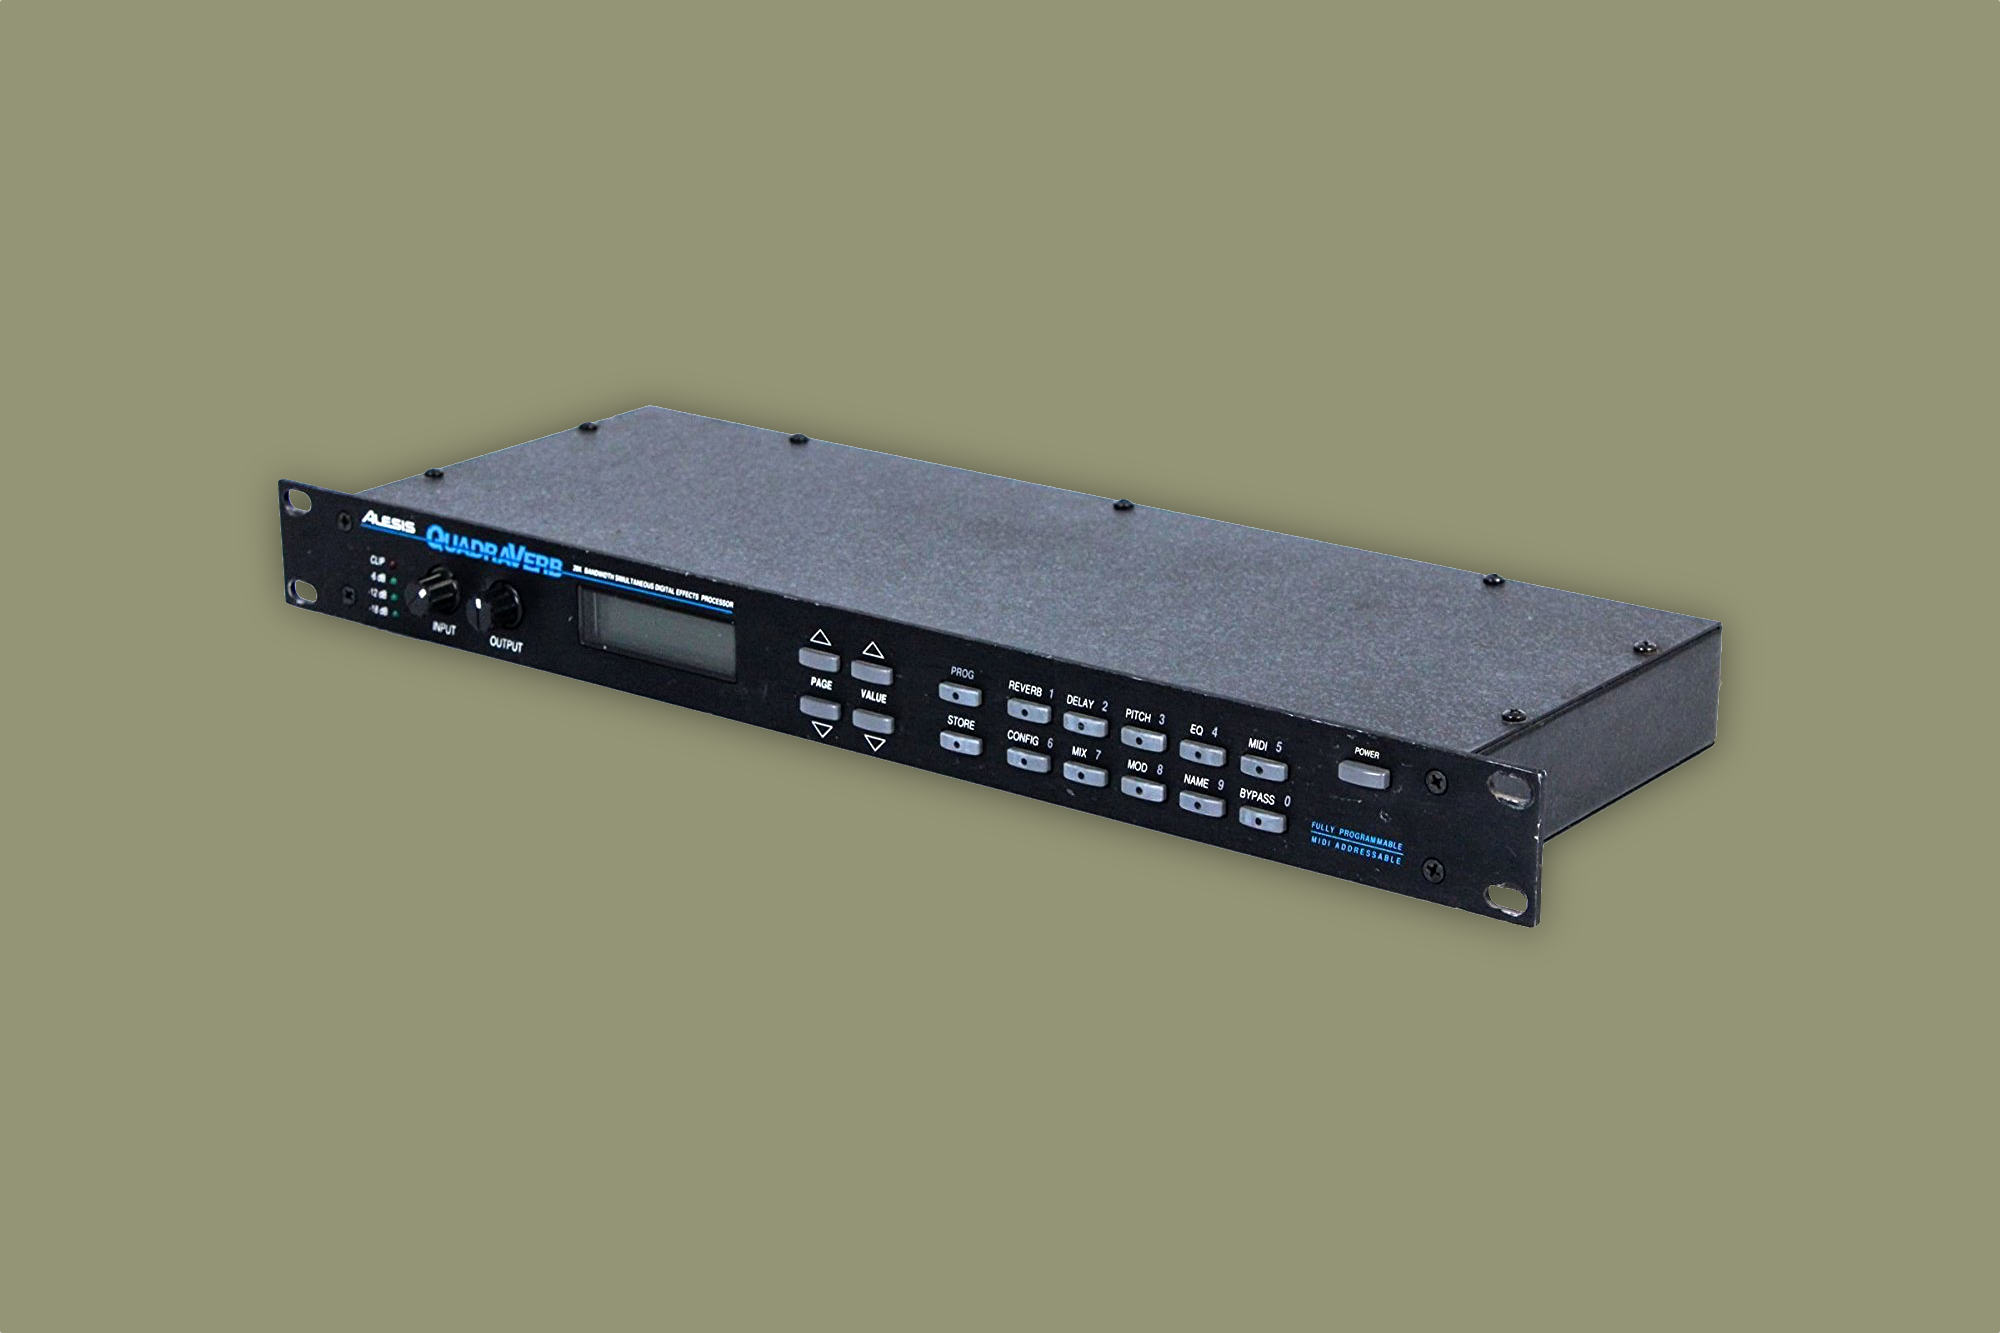 Circuit Bent Sk1 Sk5 Rackmount Patch Panel 7 Pieces Of Gear That Helped Define Autechres Game Changing Sound Autechre